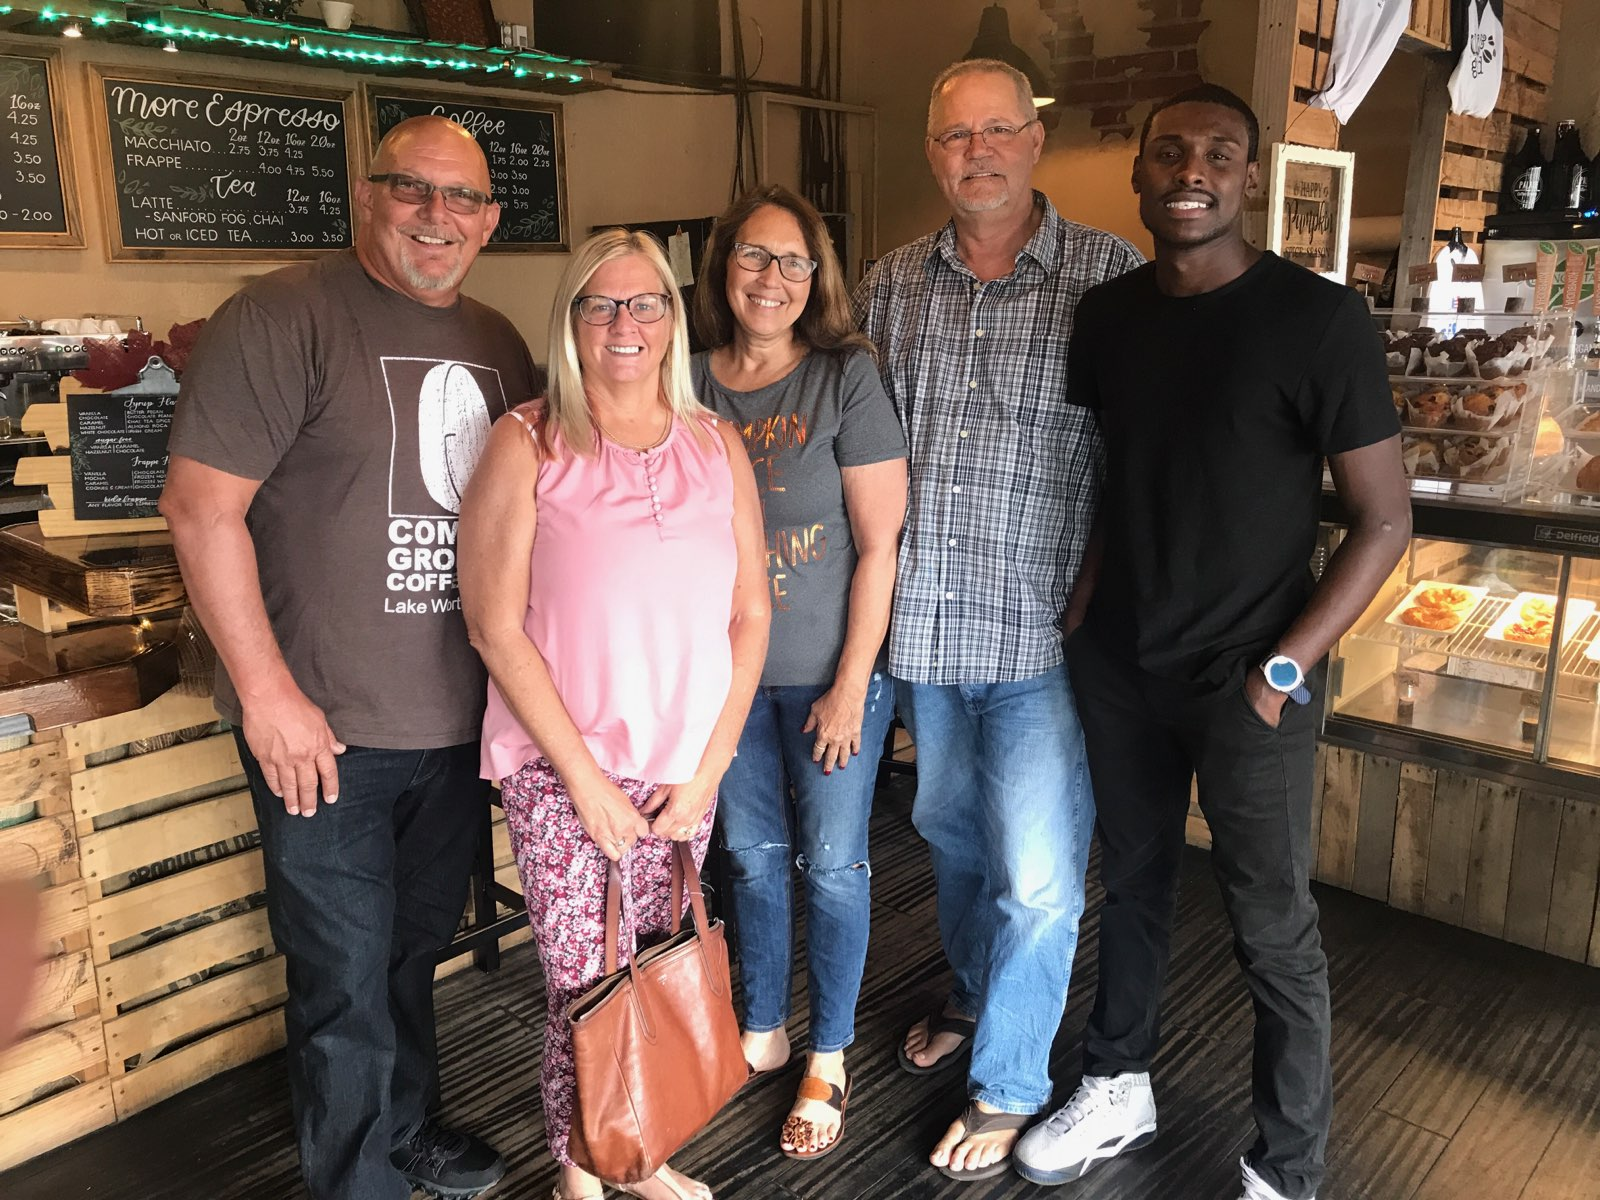 (From left) Mike Olive, Kelly Olive, Tina Kadolph, Carl Kadolph, and Devon Kadolph